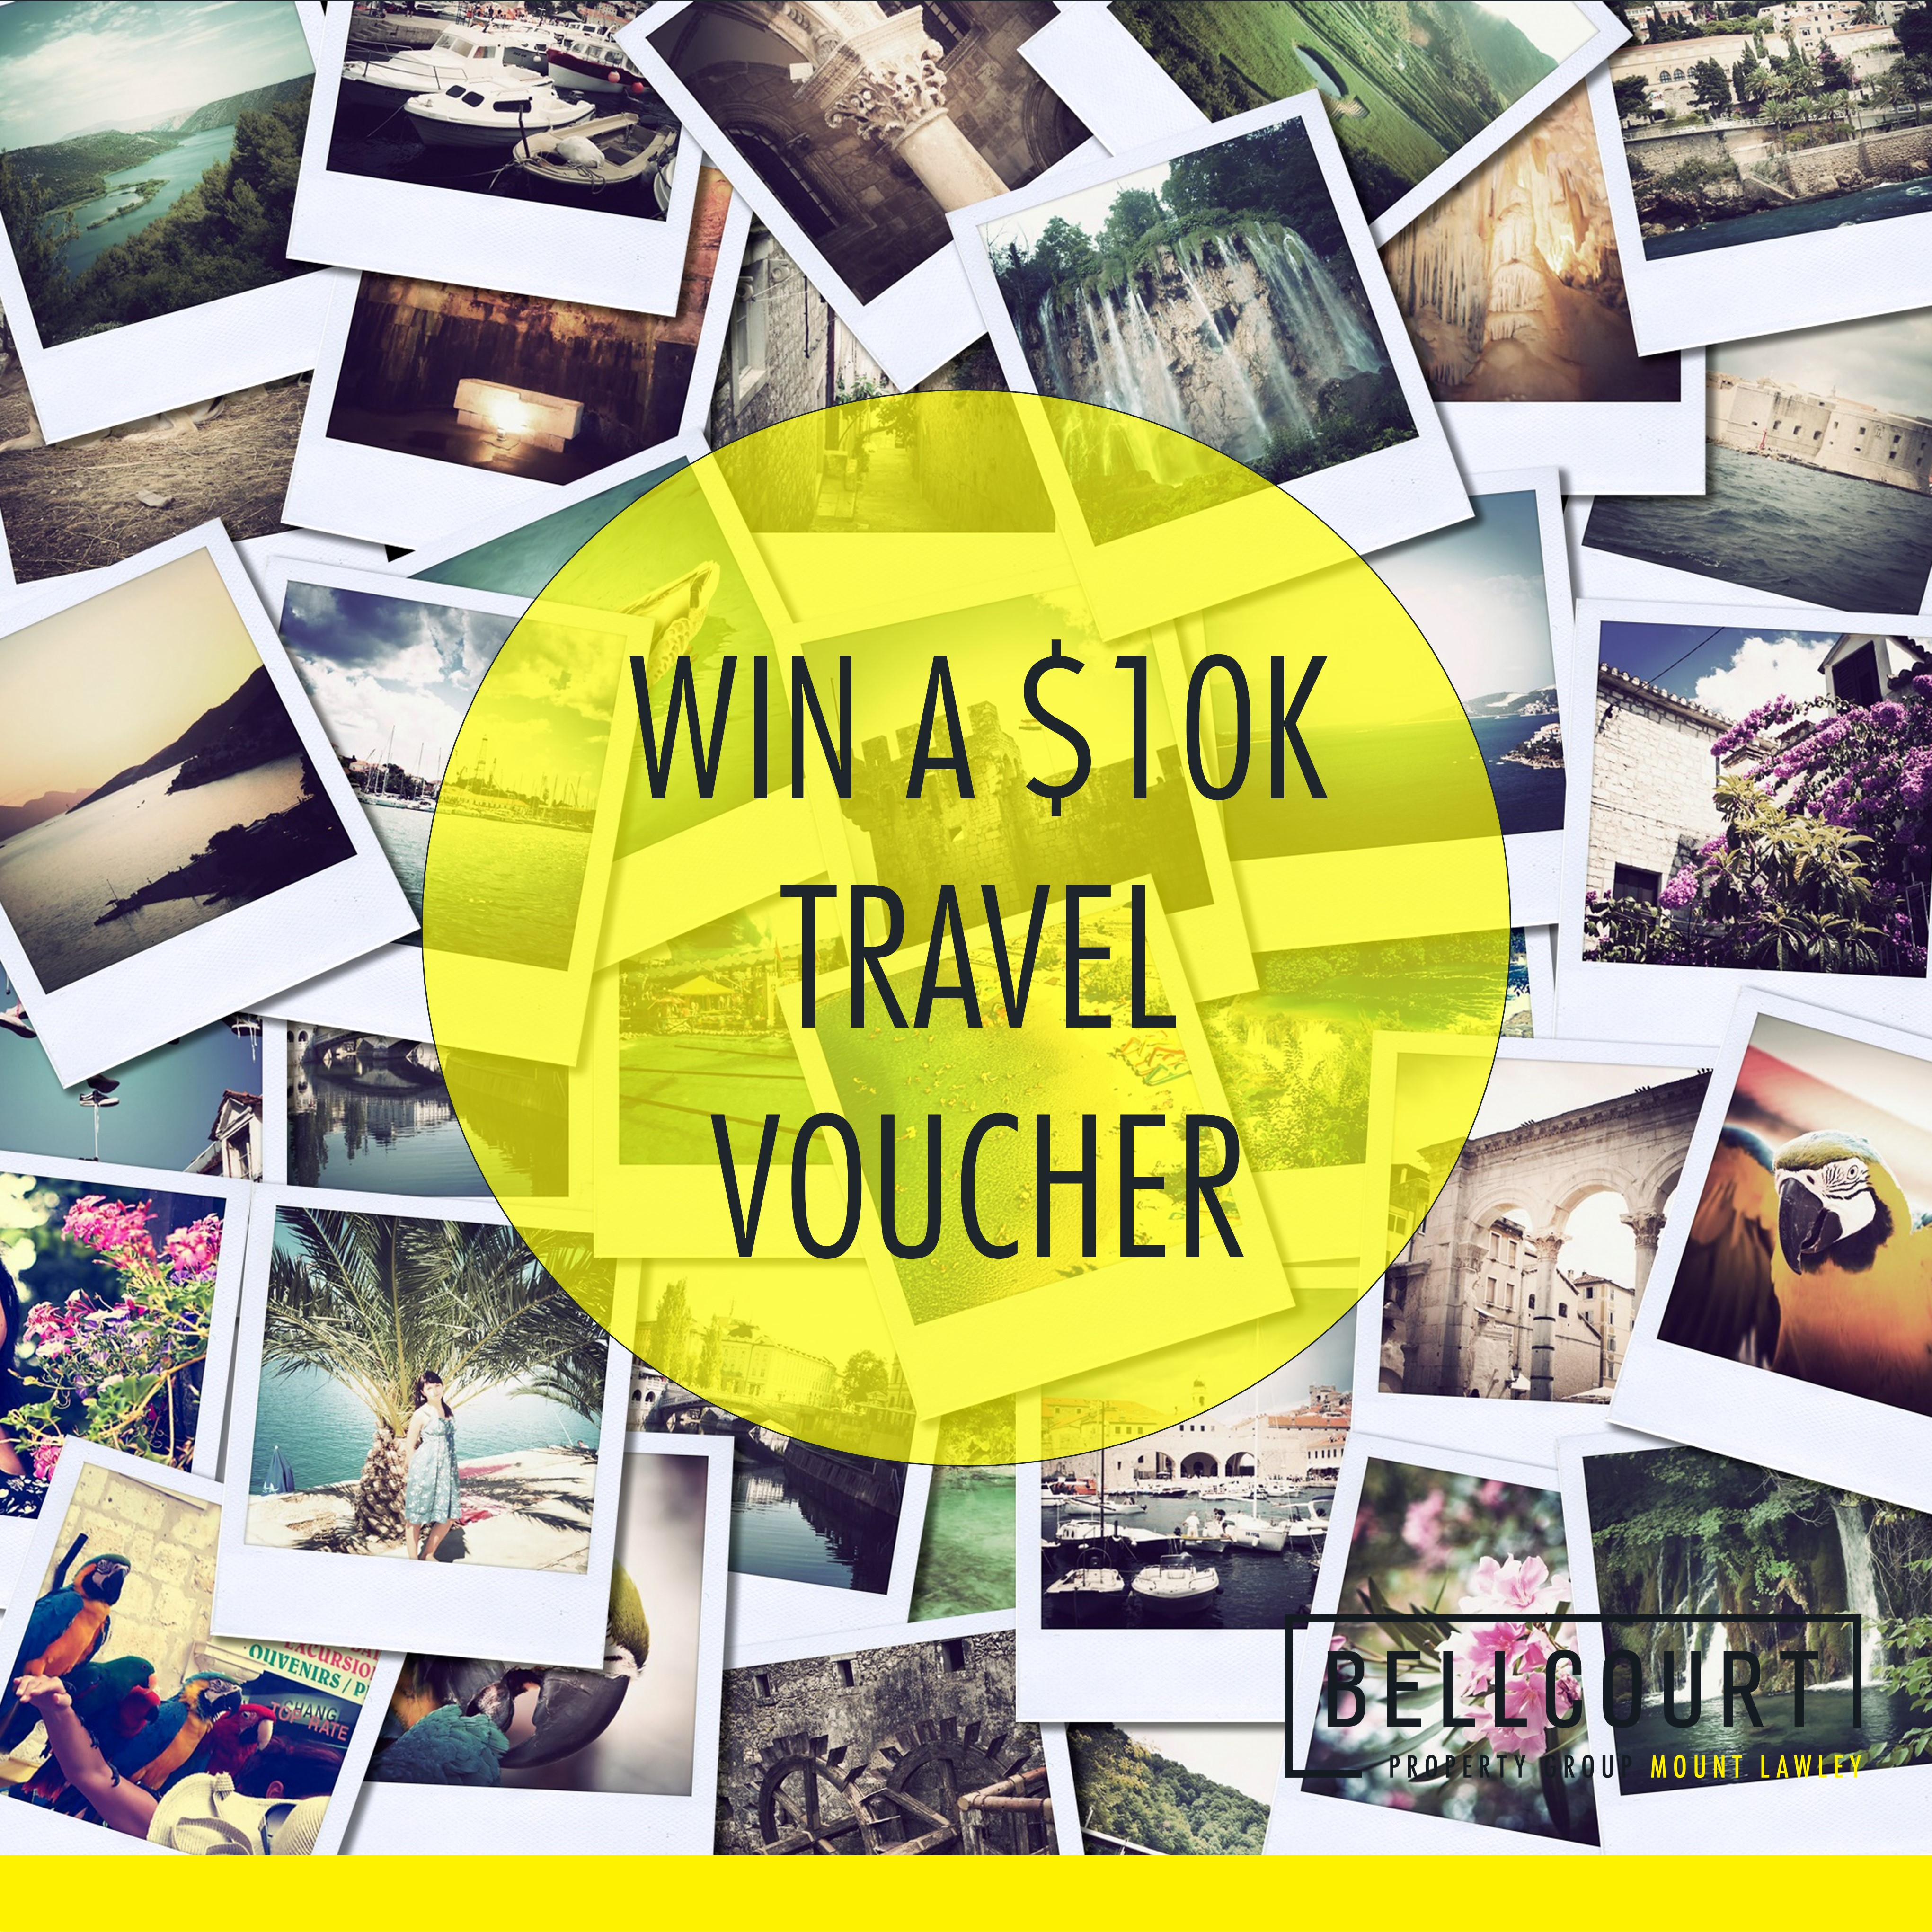 WIN A $10K HOLIDAY!